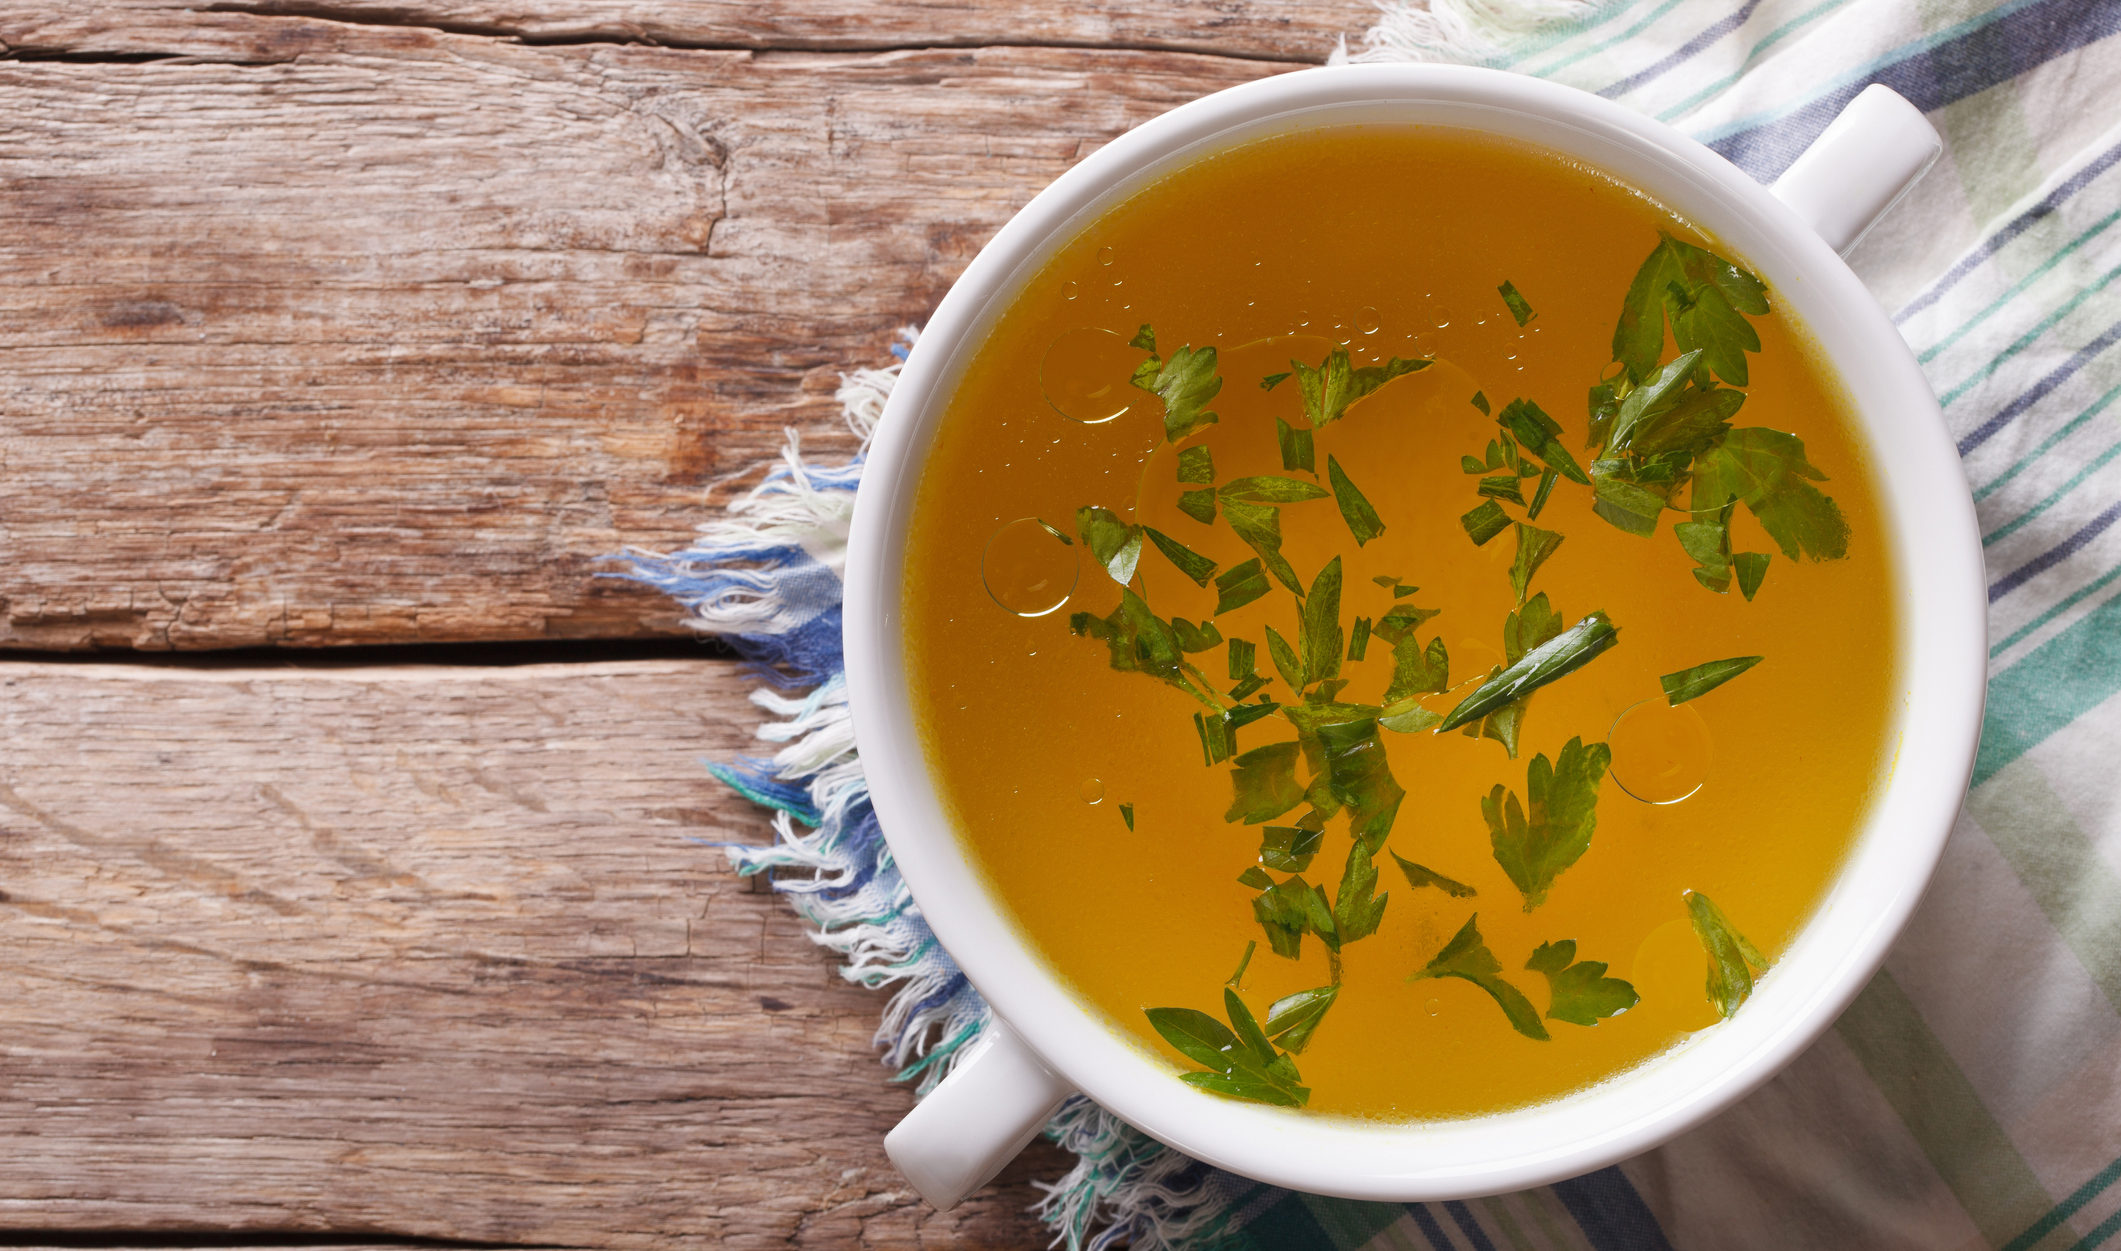 A Complete Guide To Bone Broth by Chartered Wellness